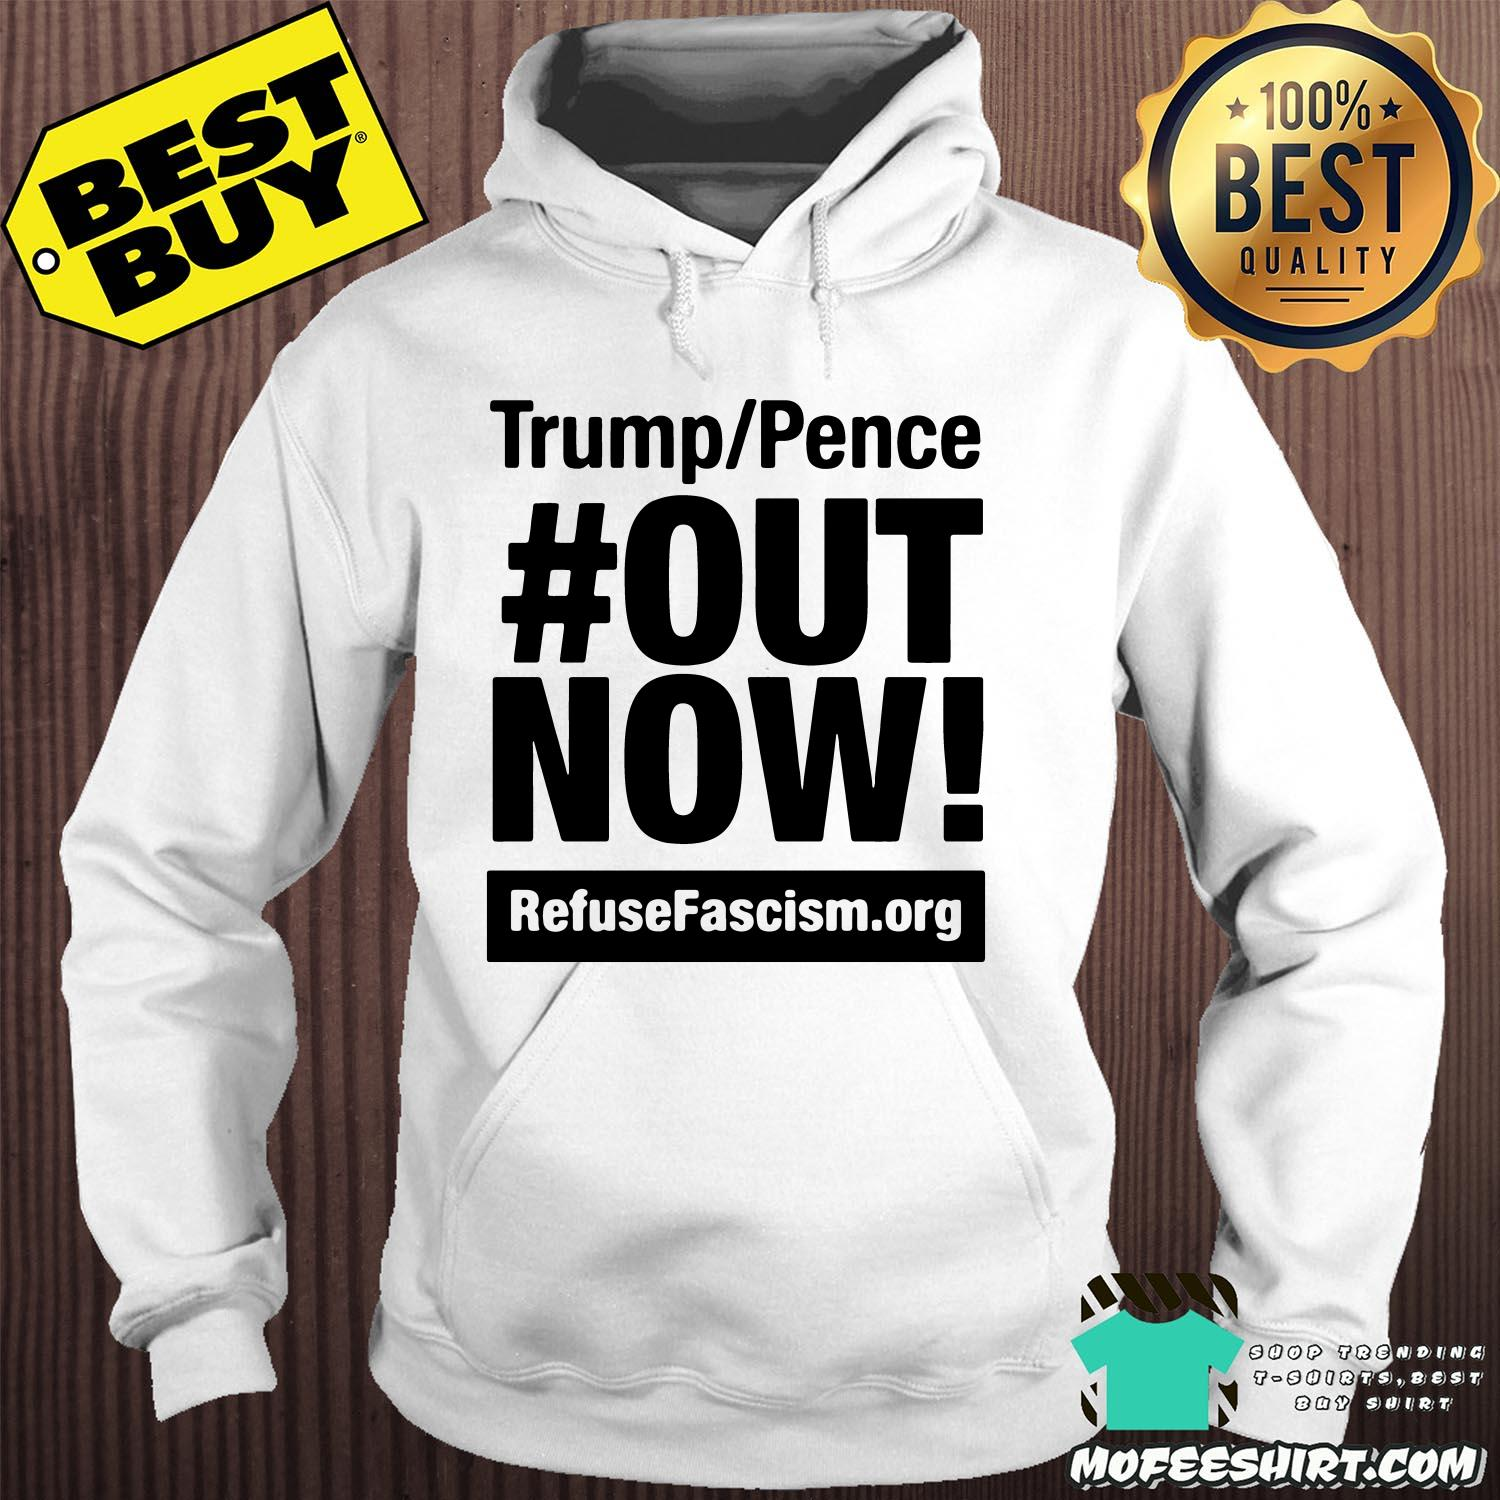 trump pence out now refuse fascism hoodie sweater - Trump/Pence Out Now Refuse Fascism Shirt Sweater